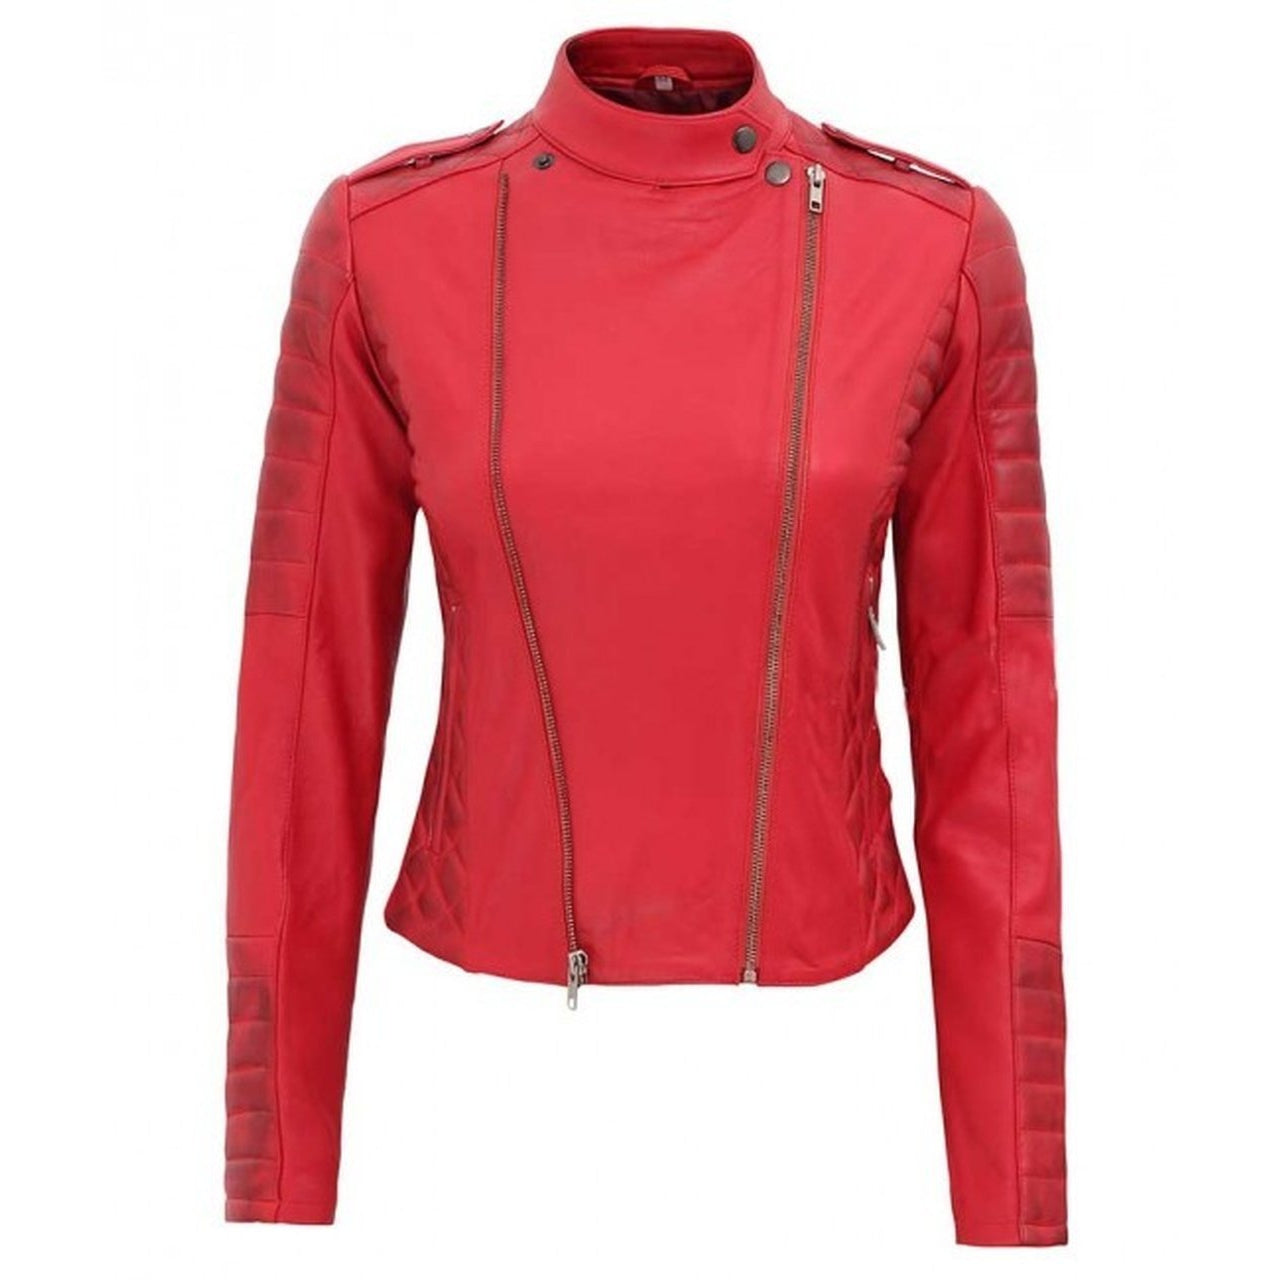 Asymmetrical Women Red Leather Jacket - Leather Jacket